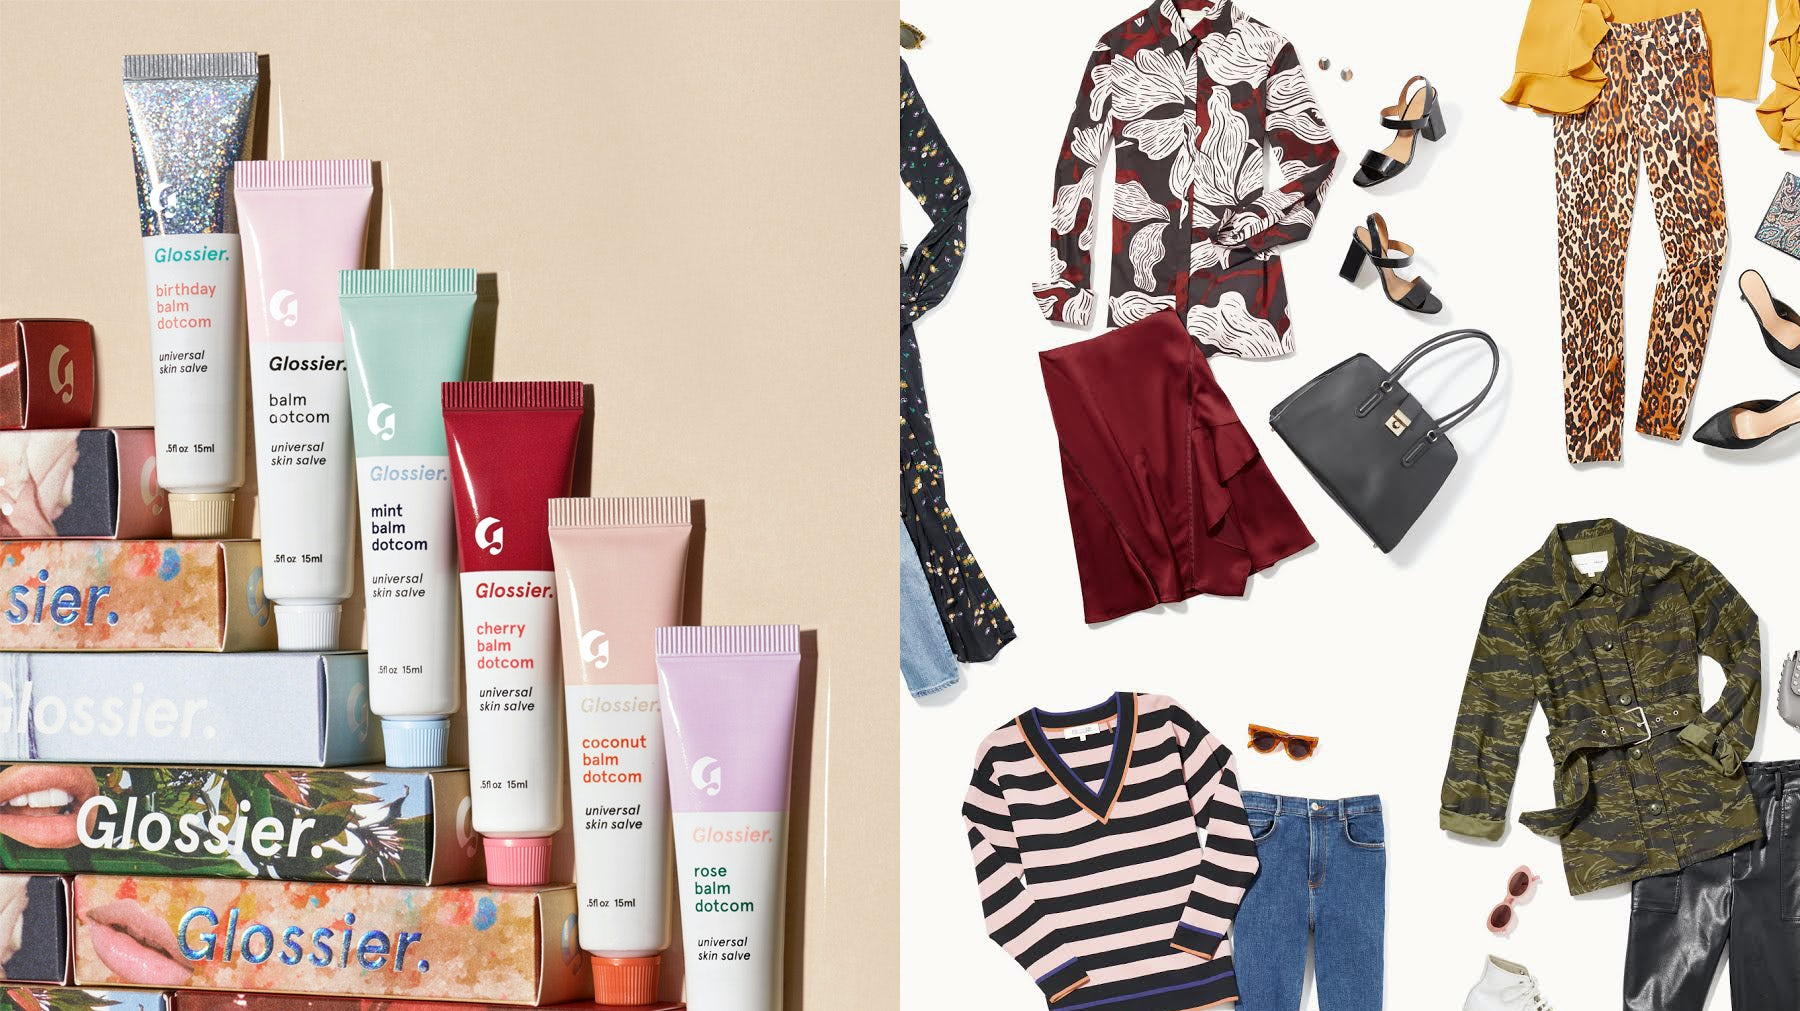 Glossier & Rent the Runway: A Tale of Two Unicorns